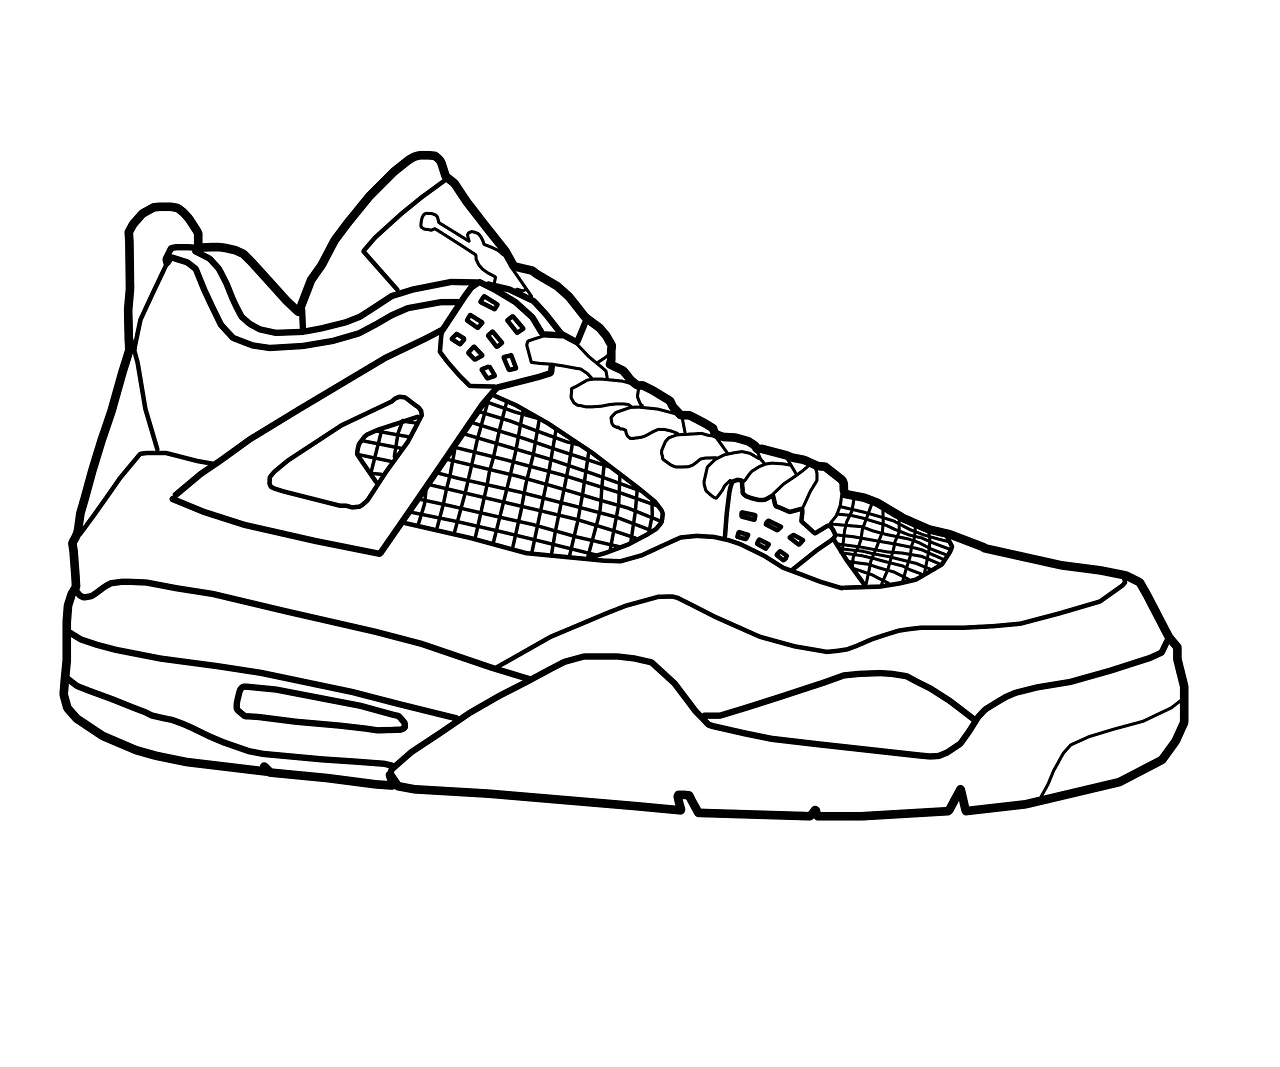 printable pictures of shoes free printable shoe coloring pages pete the cat white printable shoes pictures of